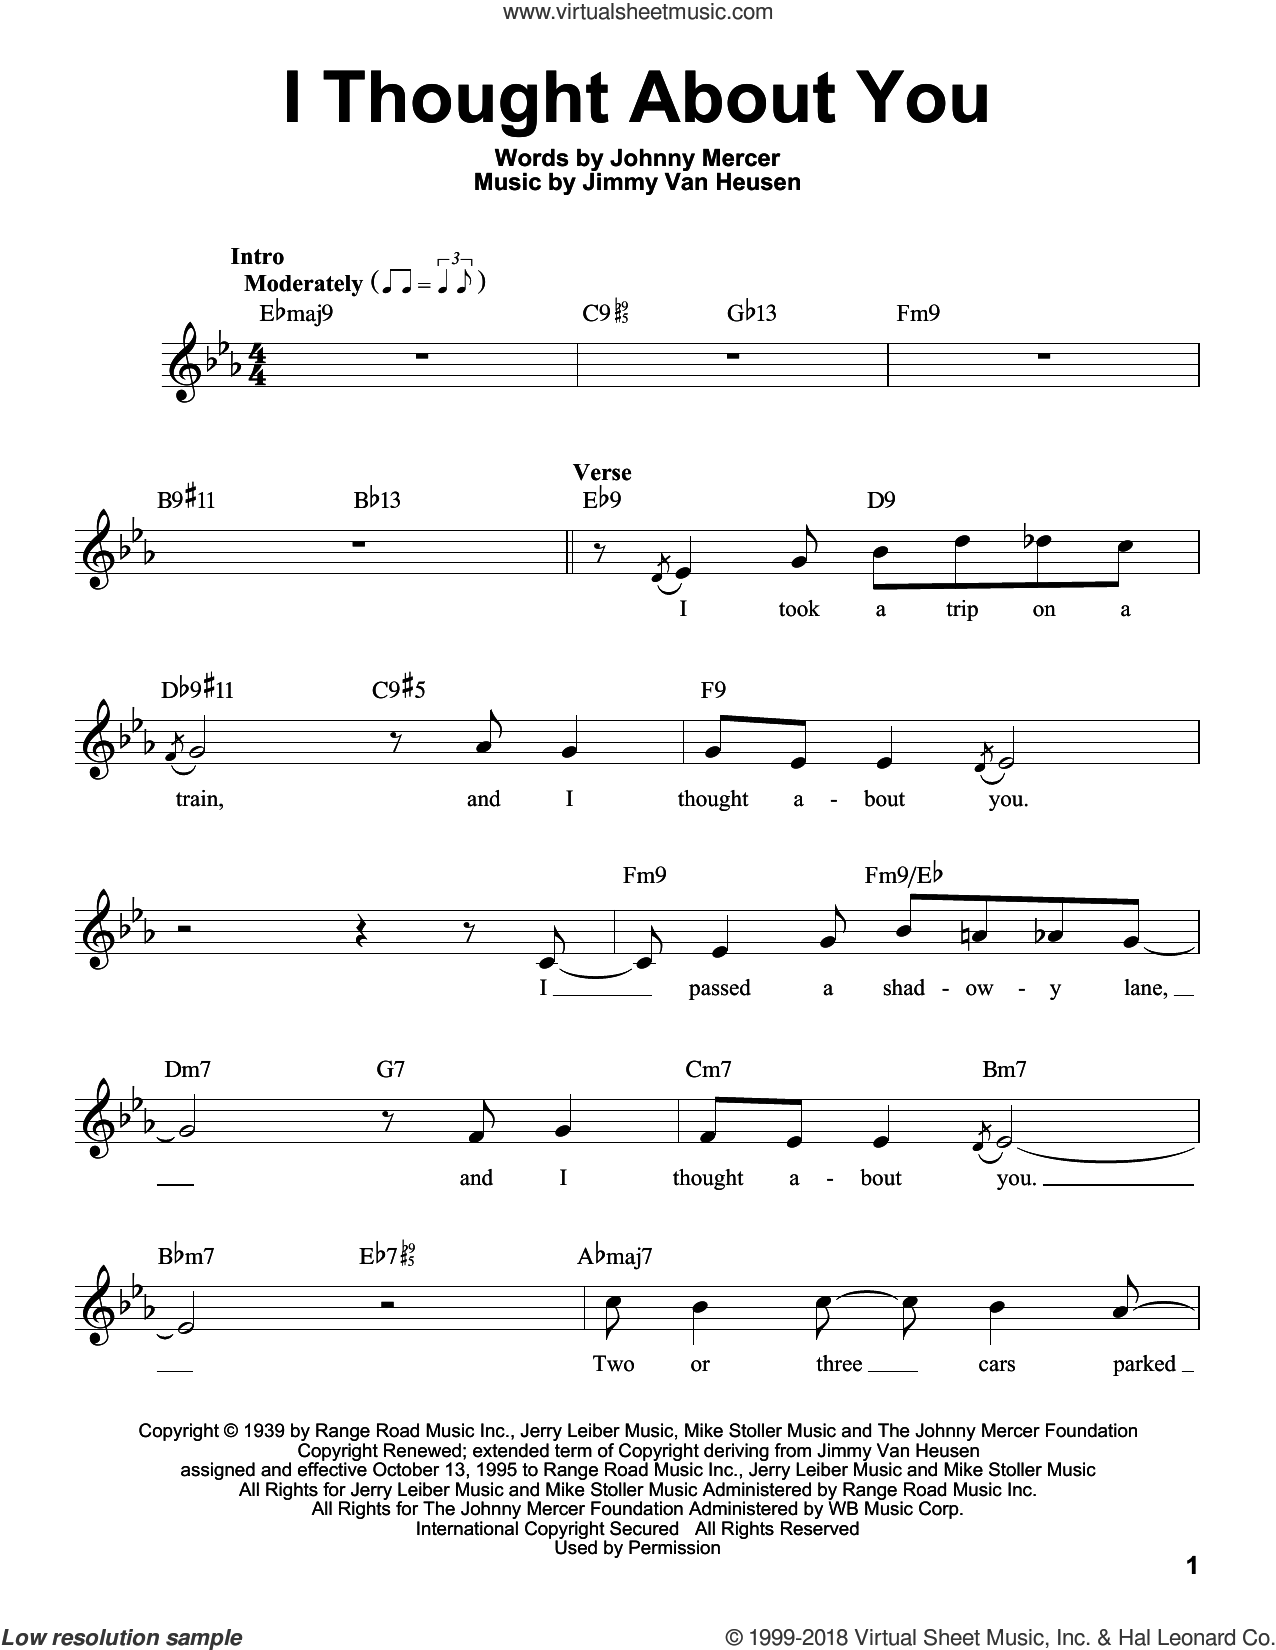 I Thought About You sheet music for voice solo by Johnny Mercer, Benny Goodman and Jimmy Van Heusen, intermediate skill level